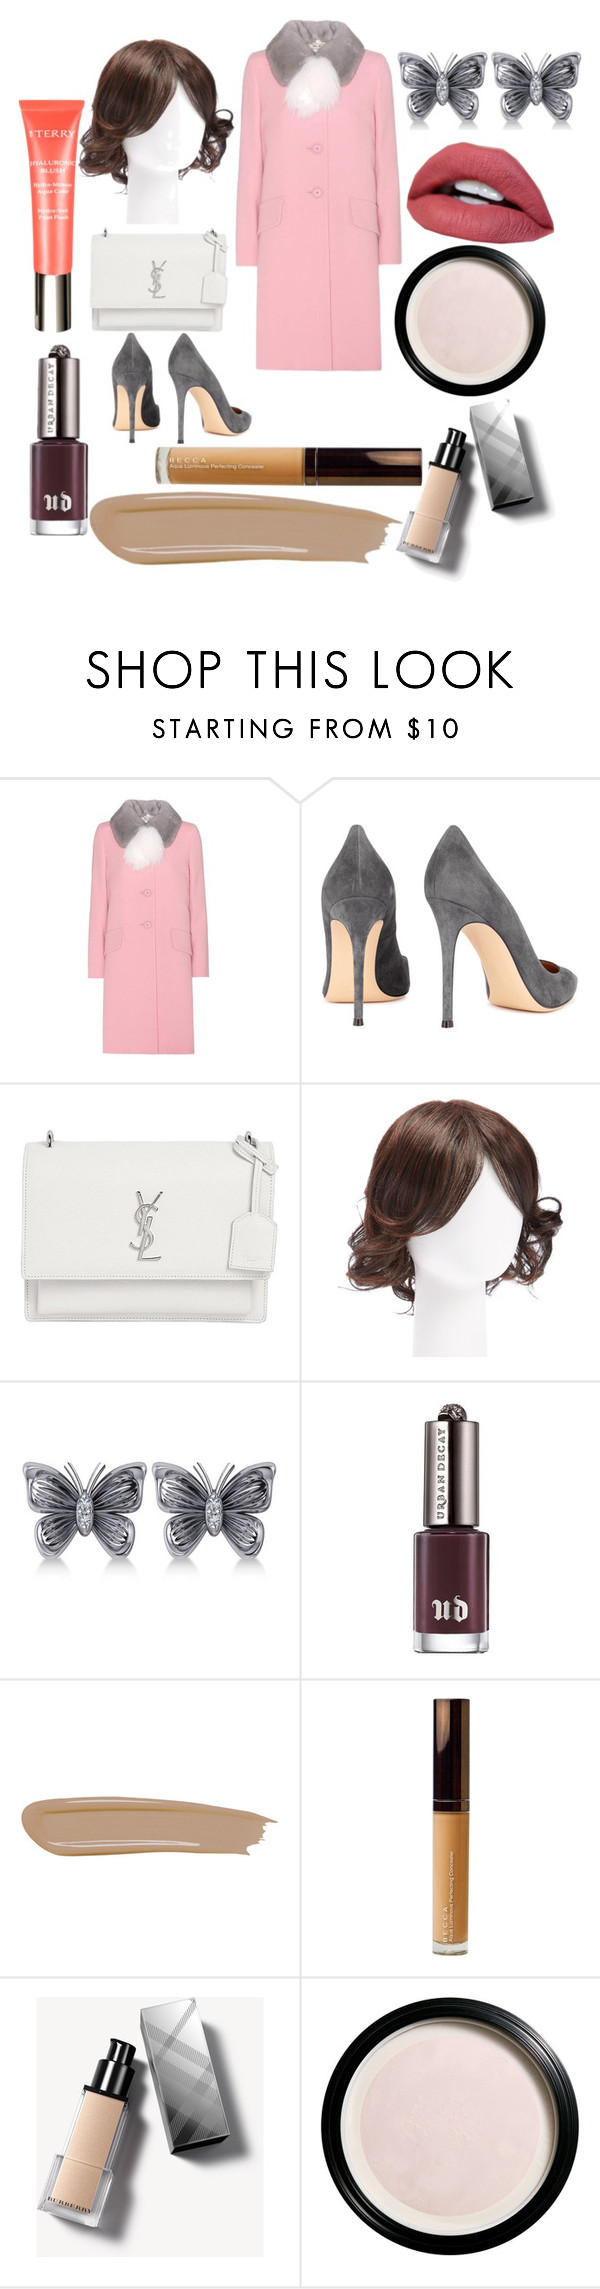 """Untitled #113"" by yasm-ina ❤ liked on Polyvore featuring Miu Miu, Gianvito Rossi, Yves Saint Laurent, Hairdo, Allurez, Urban Decay, By Terry, Becca, Burberry and Clé de Peau Beauté"